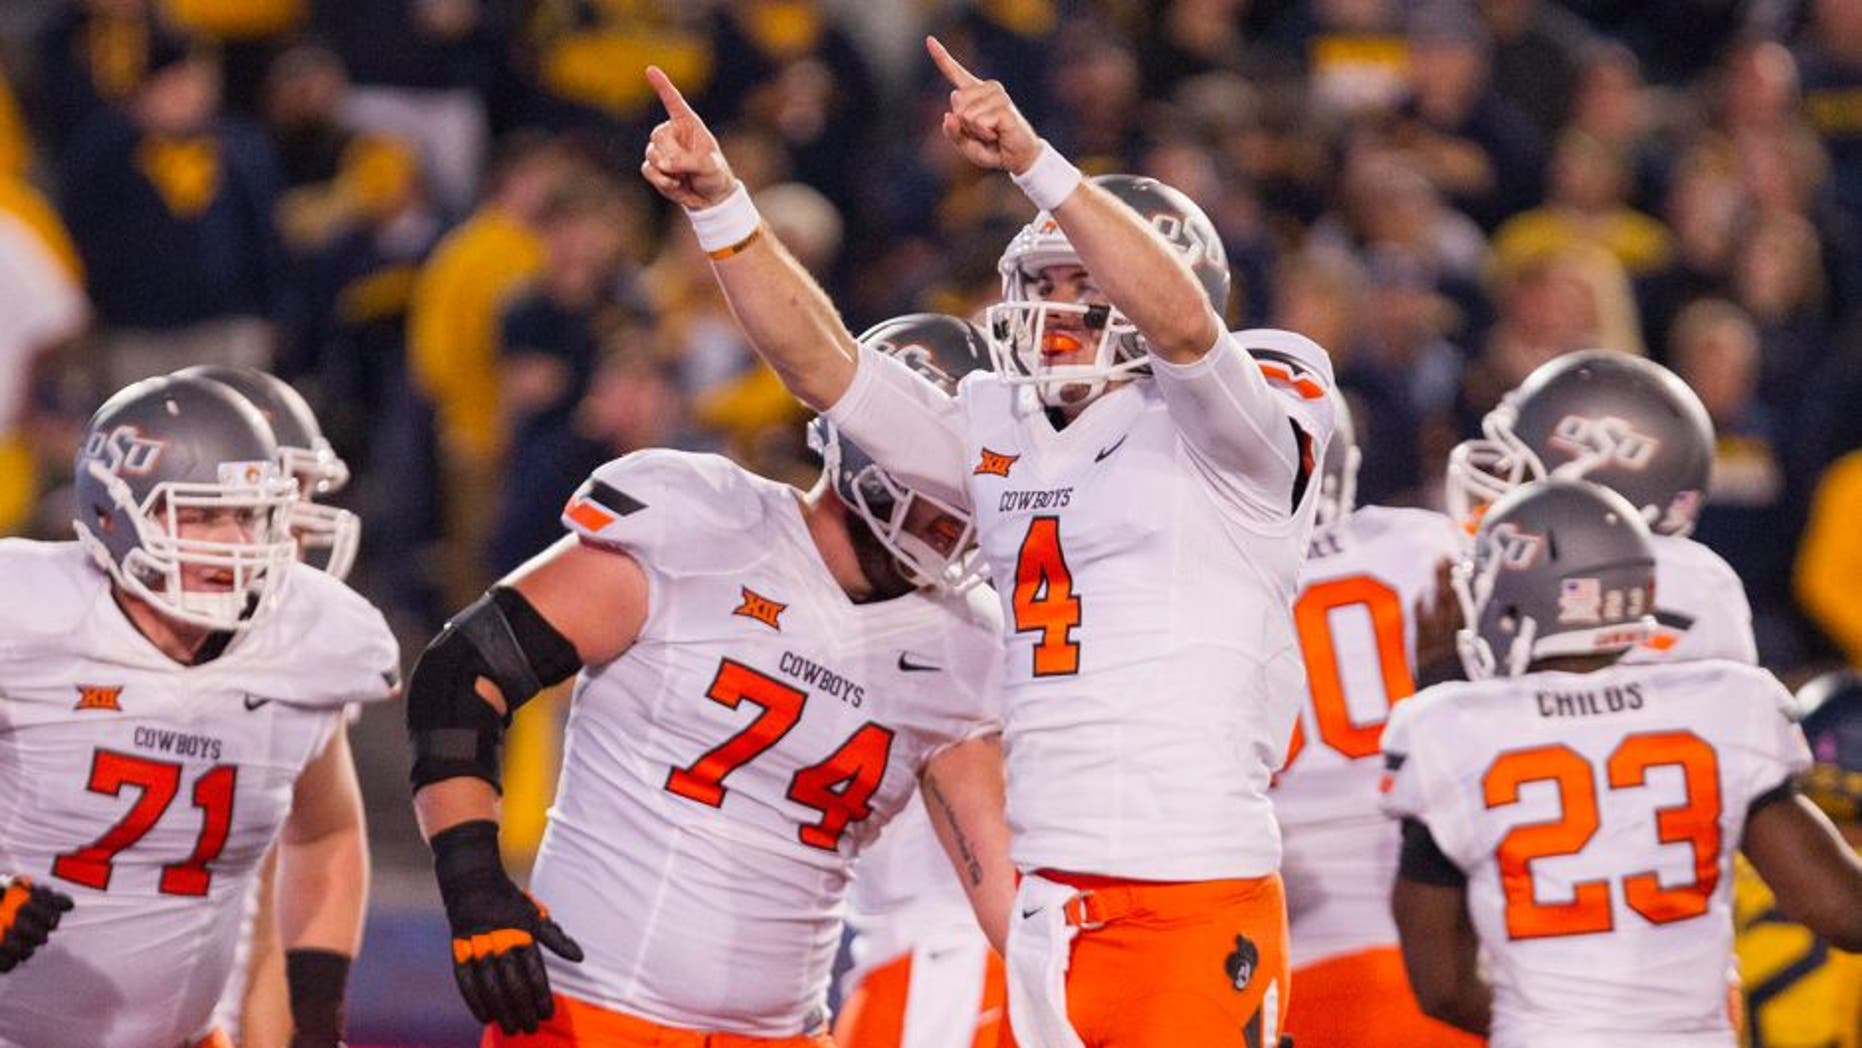 Oct 10, 2015; Morgantown, WV, USA; Oklahoma State Cowboys quarterback J.W Walsh celebrates after a touchdown during the third quarter against the West Virginia Mountaineers at Milan Puskar Stadium. Mandatory Credit: Ben Queen-USA TODAY Sports